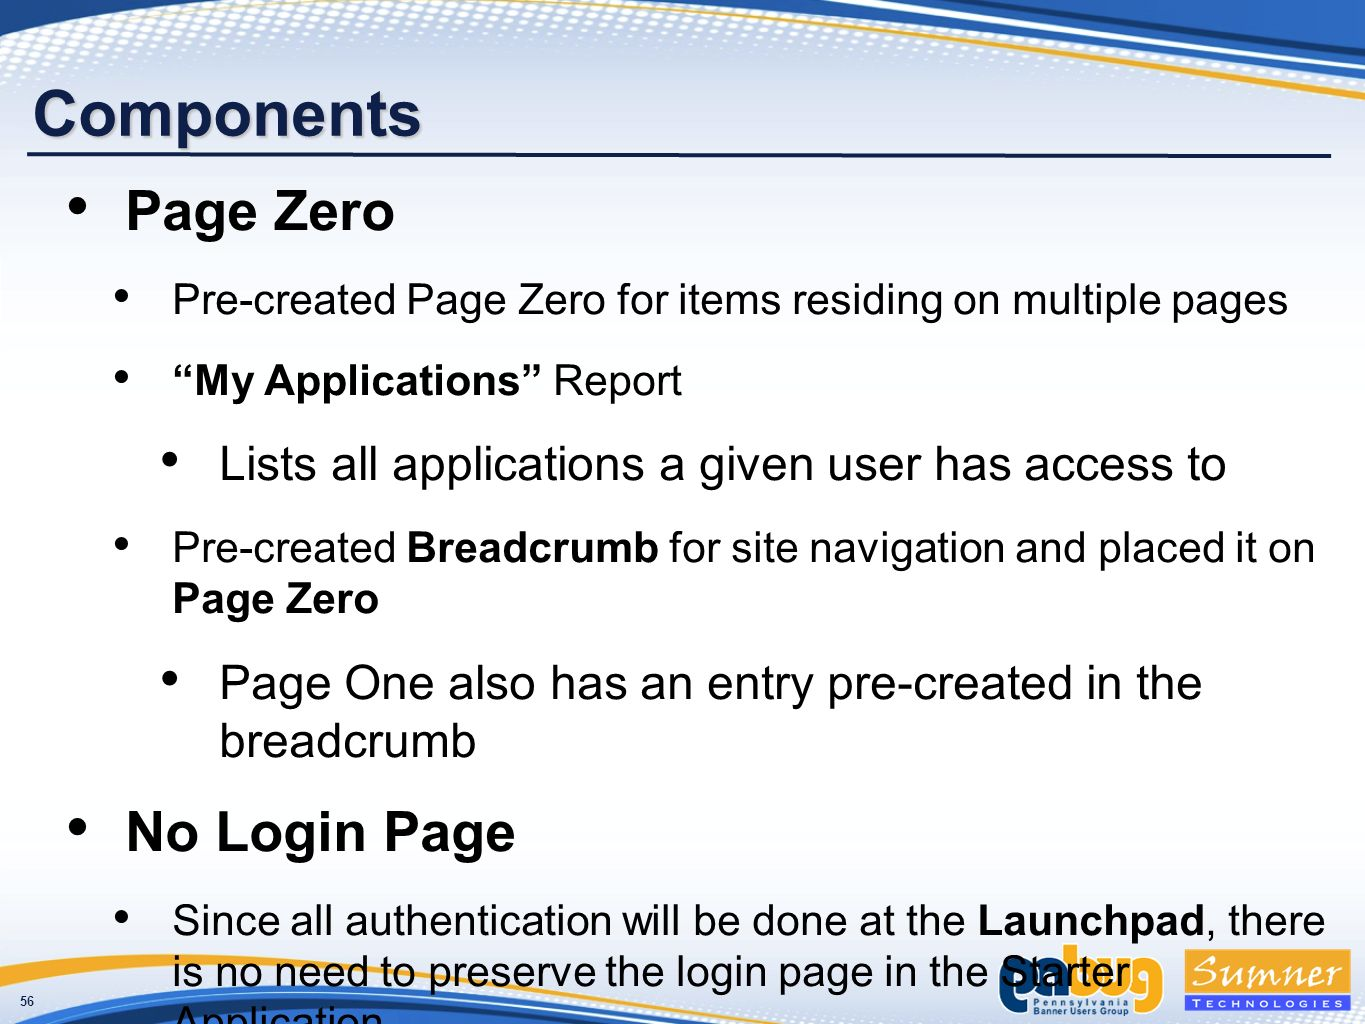 56 Components Page Zero Pre-created Page Zero for items residing on multiple pages My Applications Report Lists all applications a given user has access to Pre-created Breadcrumb for site navigation and placed it on Page Zero Page One also has an entry pre-created in the breadcrumb No Login Page Since all authentication will be done at the Launchpad, there is no need to preserve the login page in the Starter Application